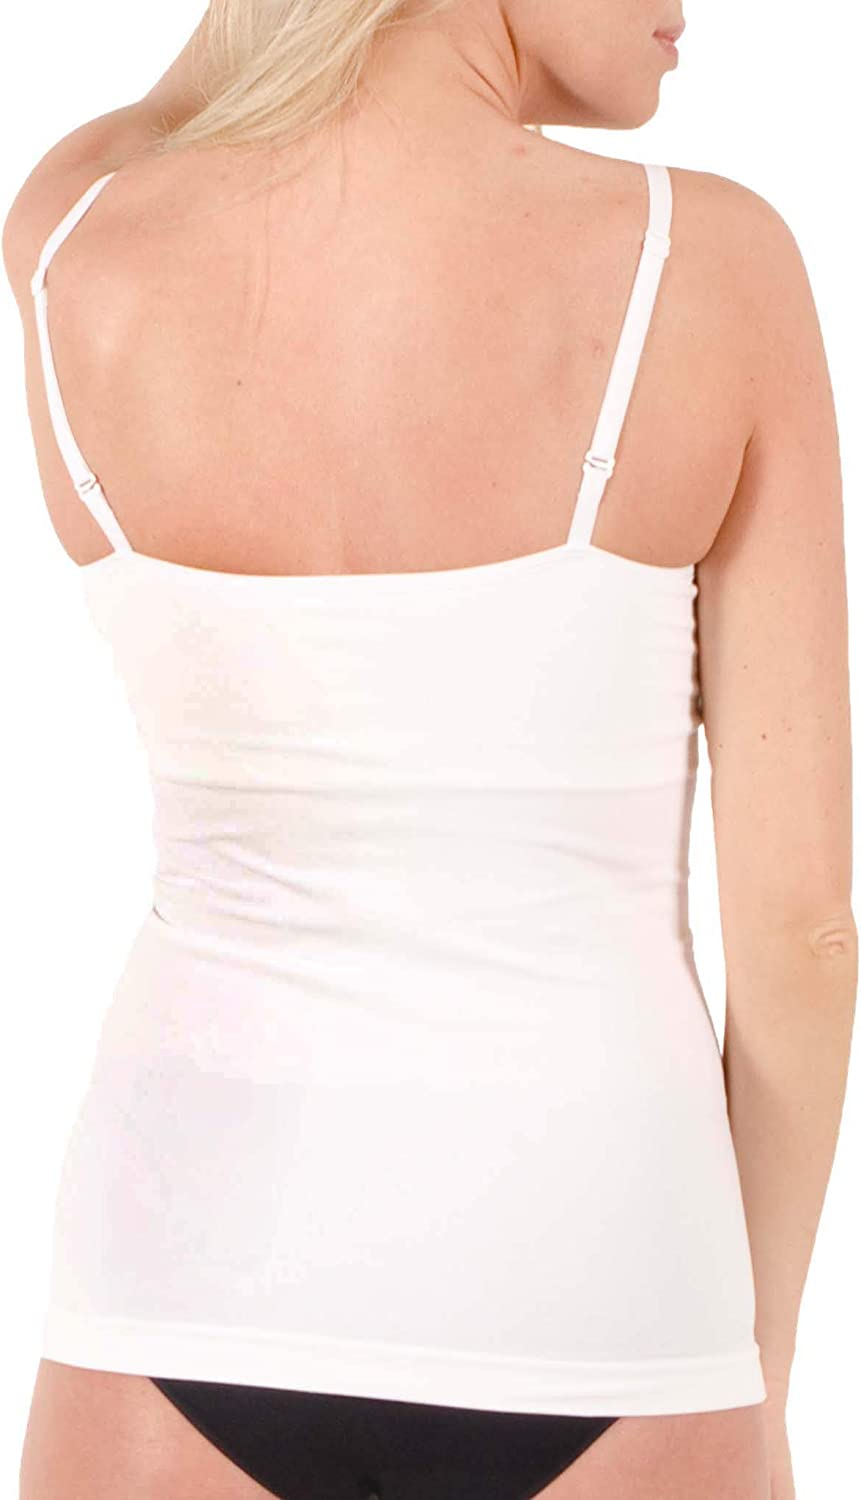 miel Womens Coco Camisole Formfitting Tank Top Bra Perfect Everyday Breathable Comfortable Cami